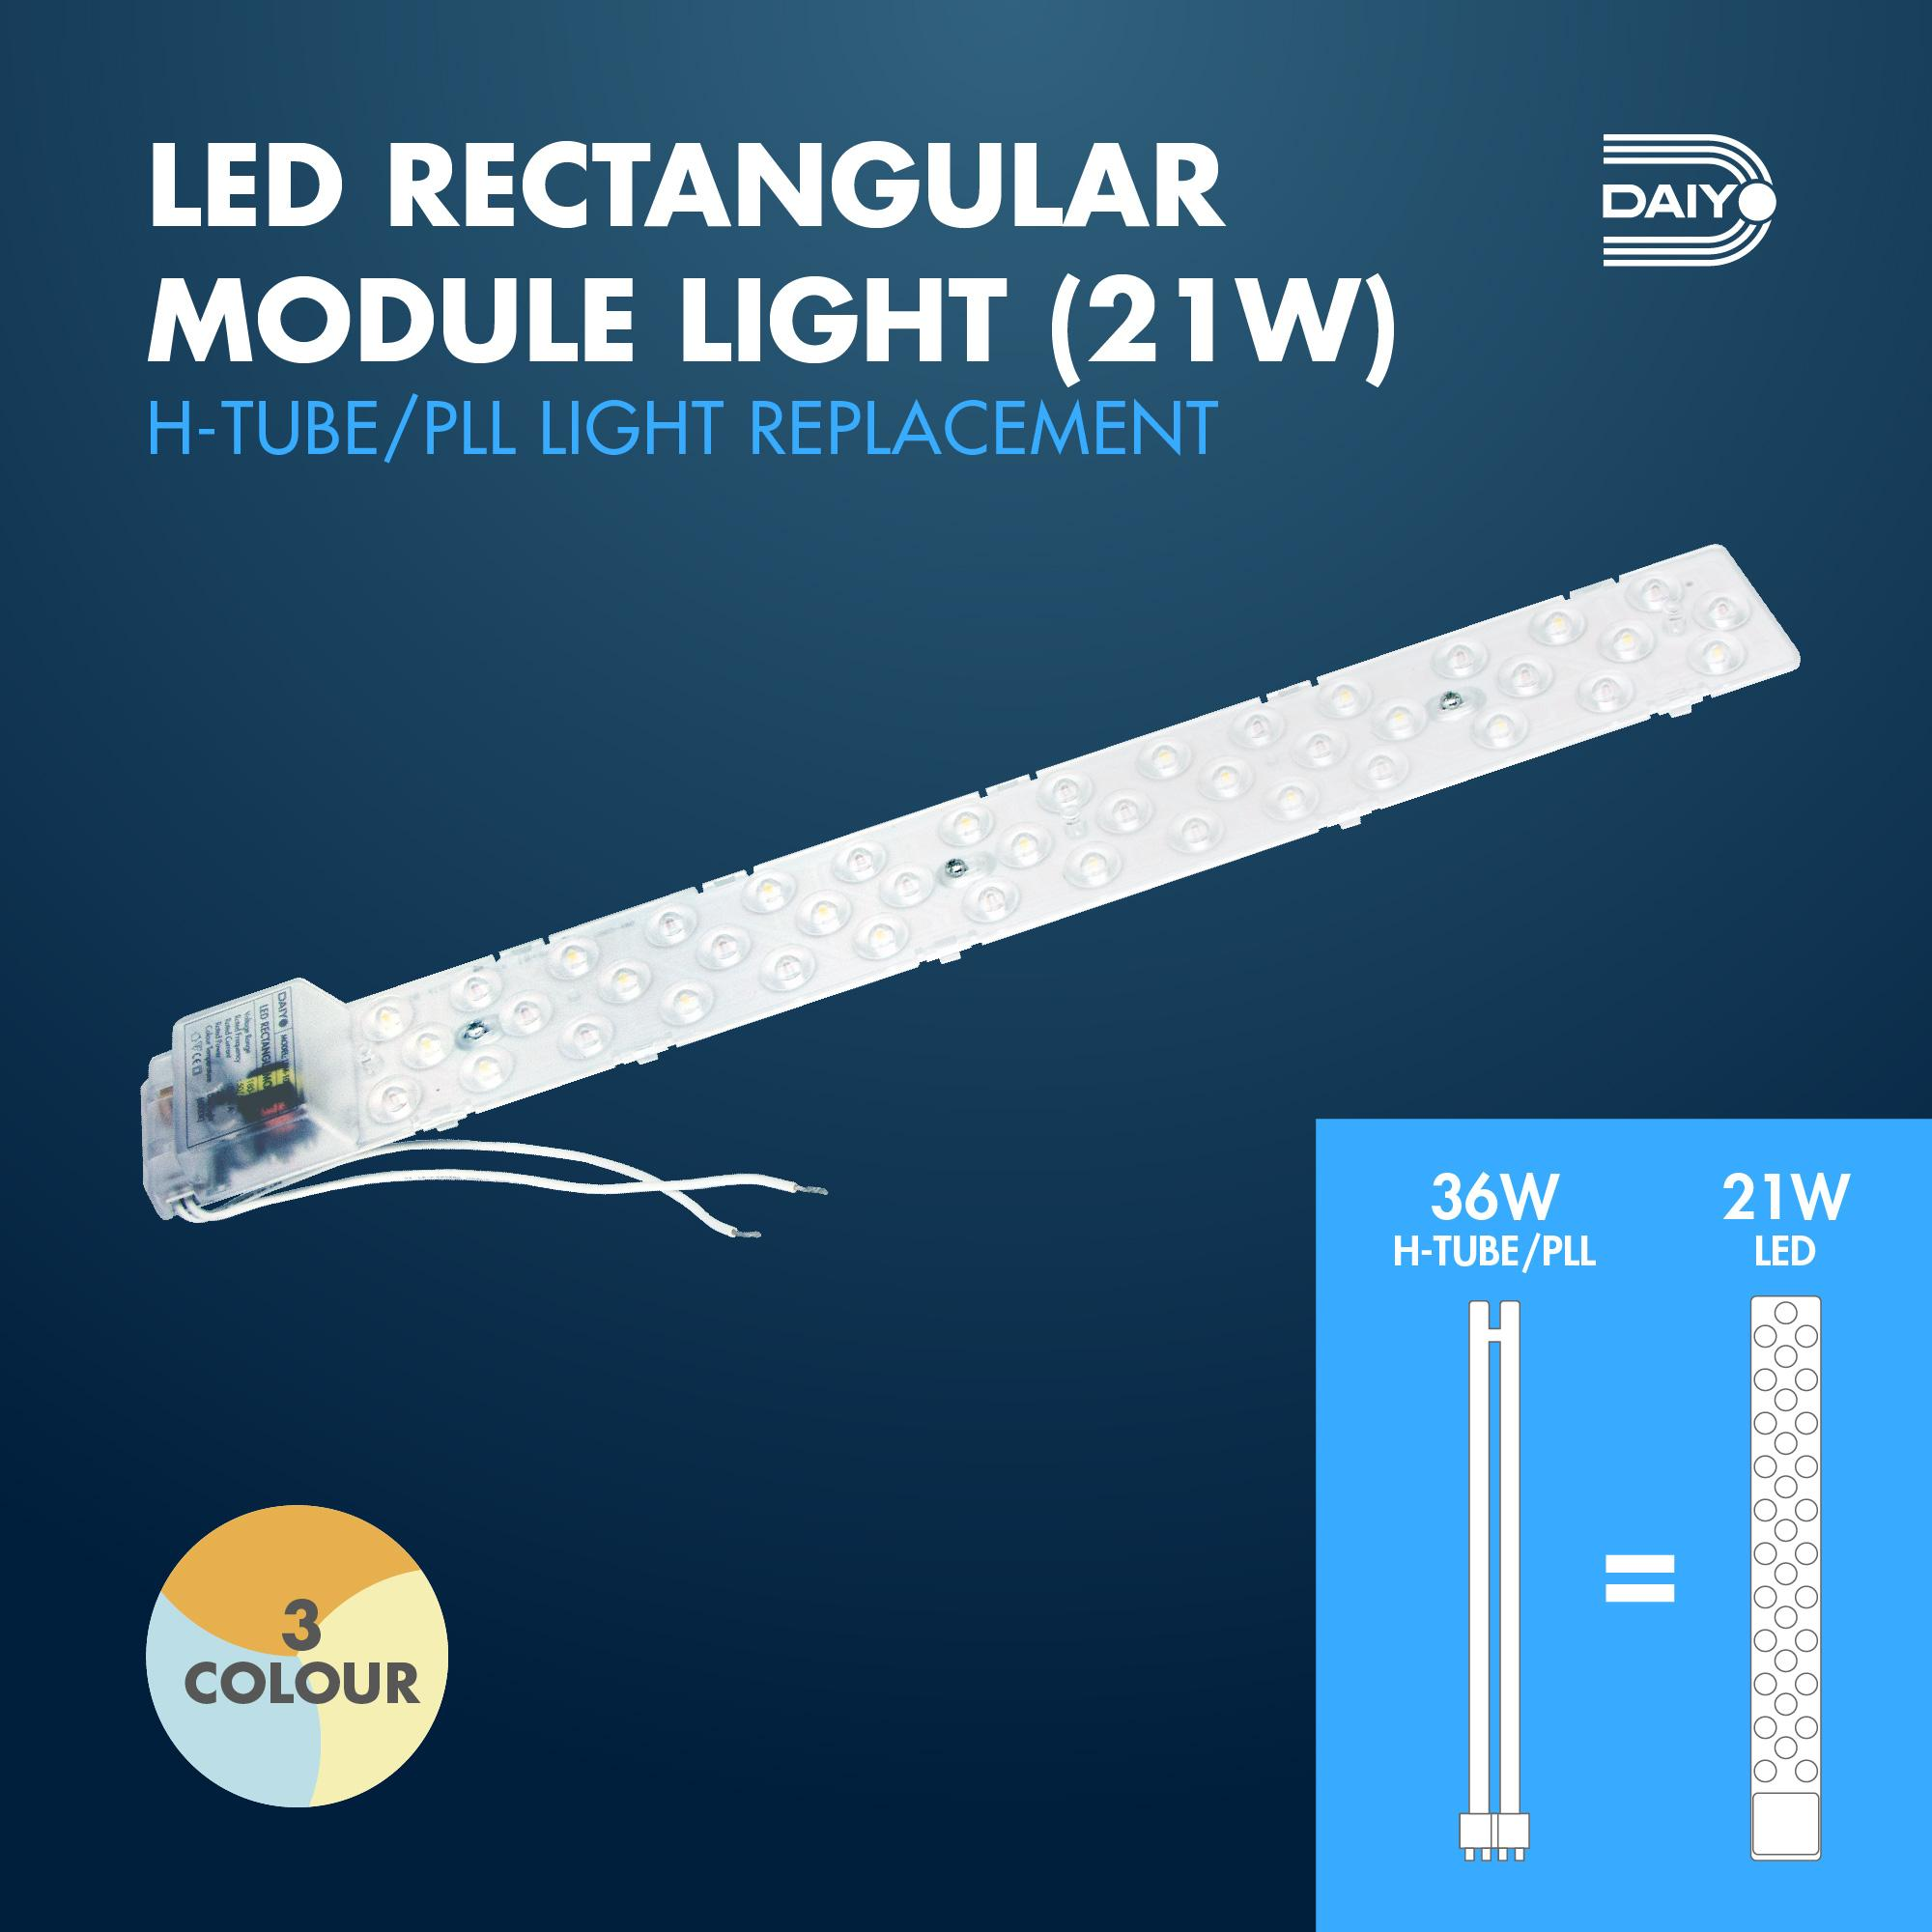 21W LED Rectangle Module Light (3 Colours)